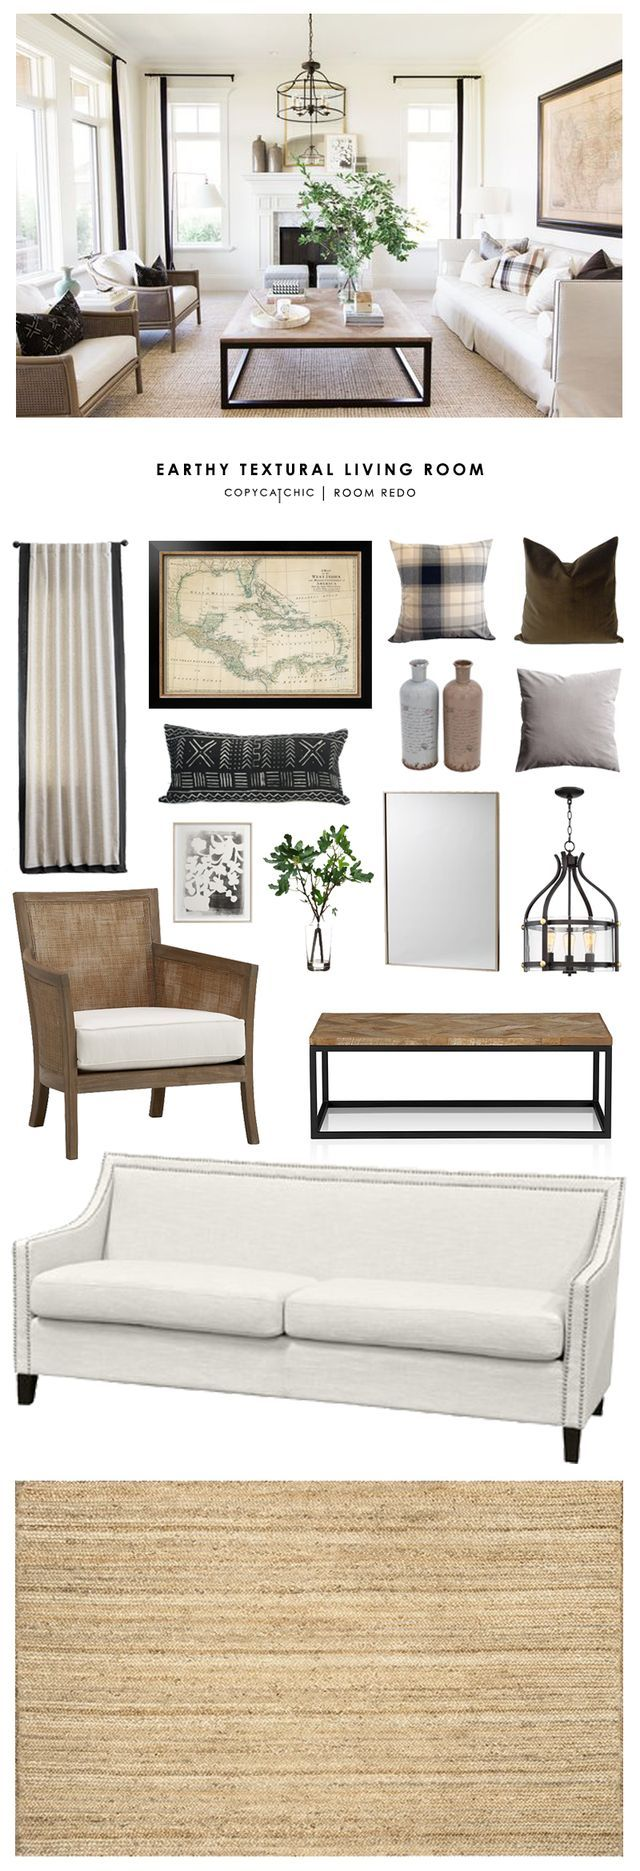 TOTAL | $3,613   SOFA $849 | CHAIRS (EA) $594 | COFFEE TABLE $145 OR THIS ONE $499 | RUG $220 | CHANDELIER $300 | MIRROR $199 | VASES (2) $49 | FLORAL ART $109 | MAP $188 | CURTAINS (EA) $118 | BROWN